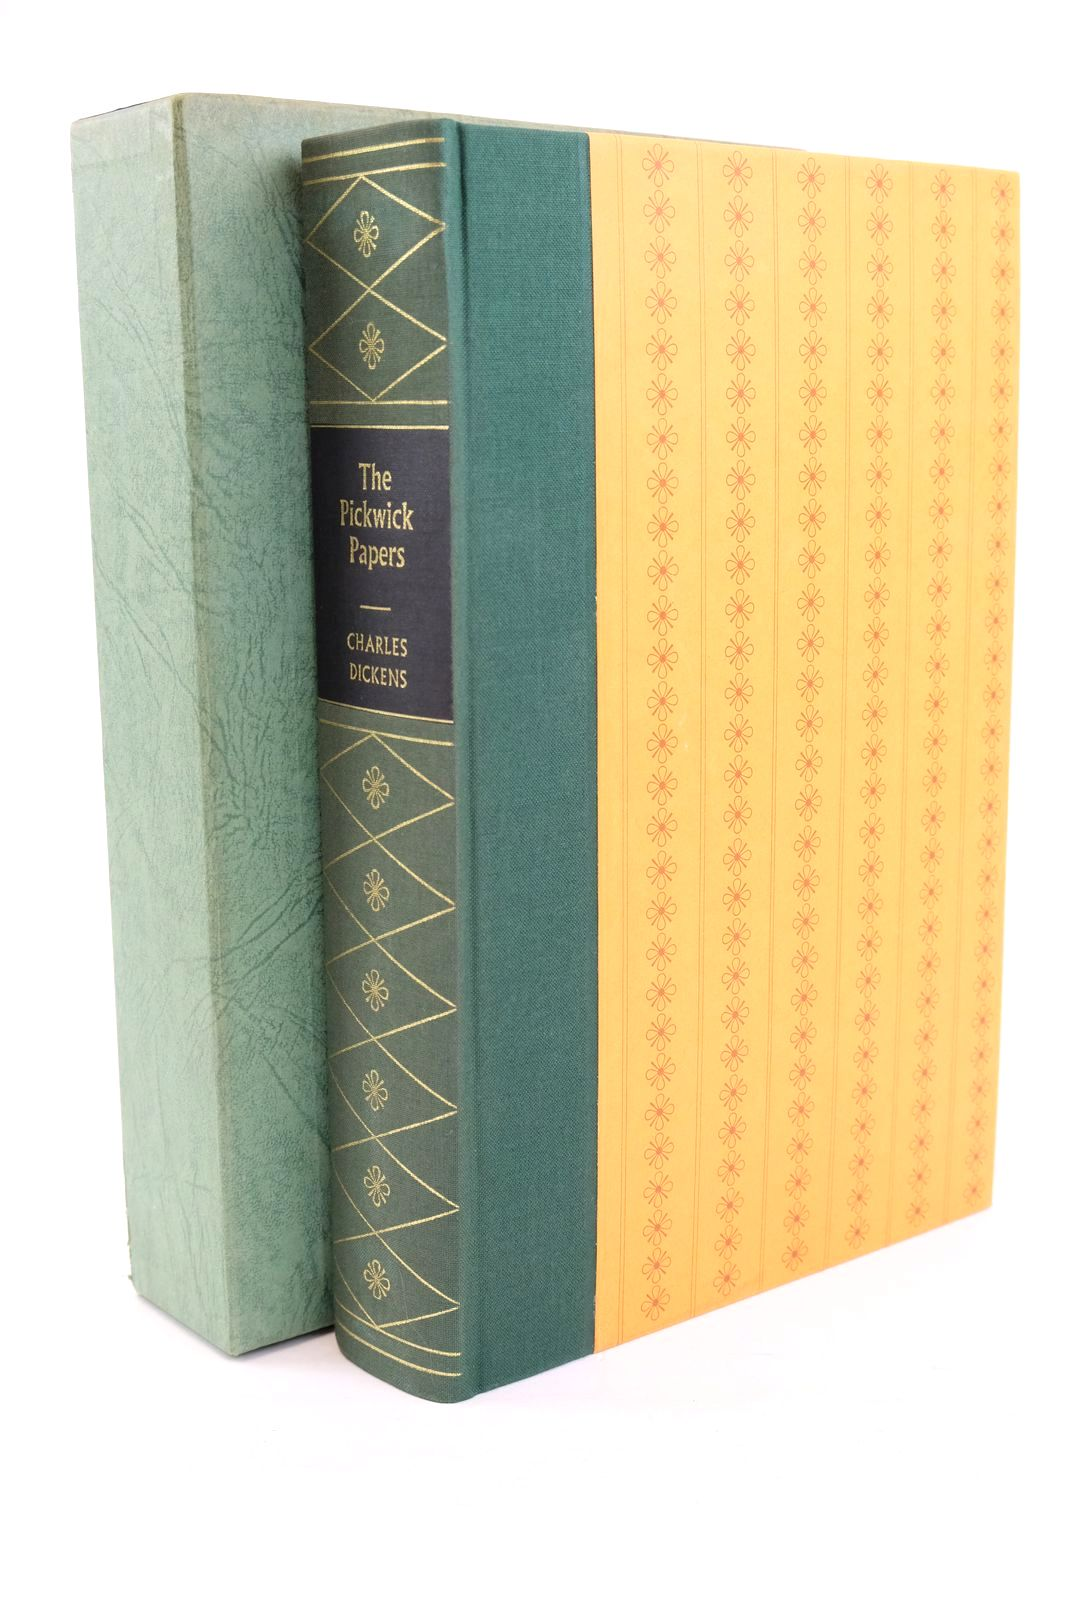 Photo of THE POSTHUMOUS PAPERS OF THE PICKWICK CLUB written by Dickens, Charles illustrated by Keeping, Charles published by Folio Society (STOCK CODE: 1320145)  for sale by Stella & Rose's Books